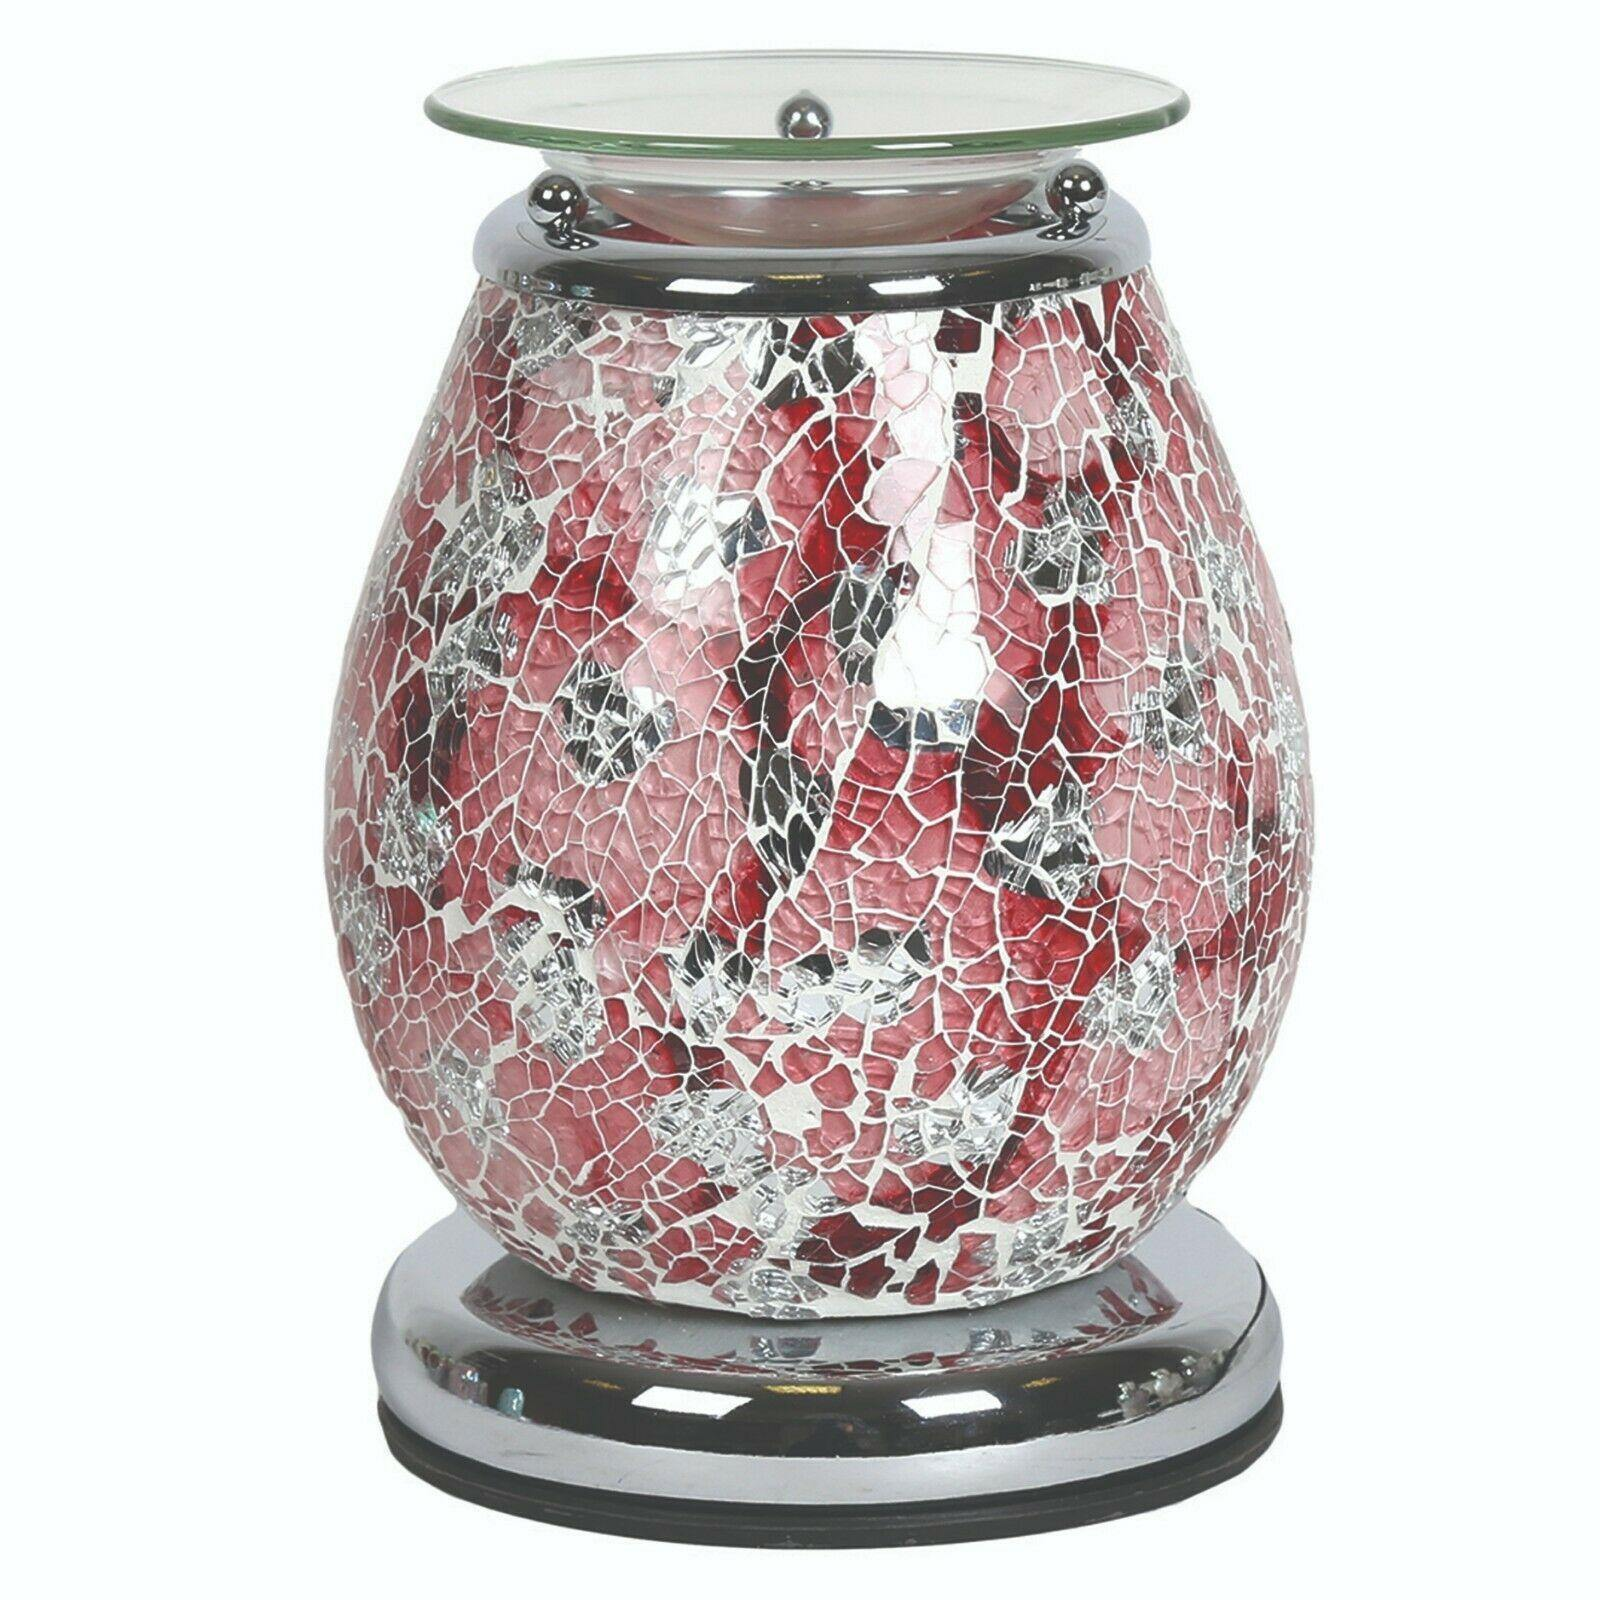 Aroma Accessories Athena Mosaic Touch Electric Wax Melt Warmer - TOSYS Candles and Gifts